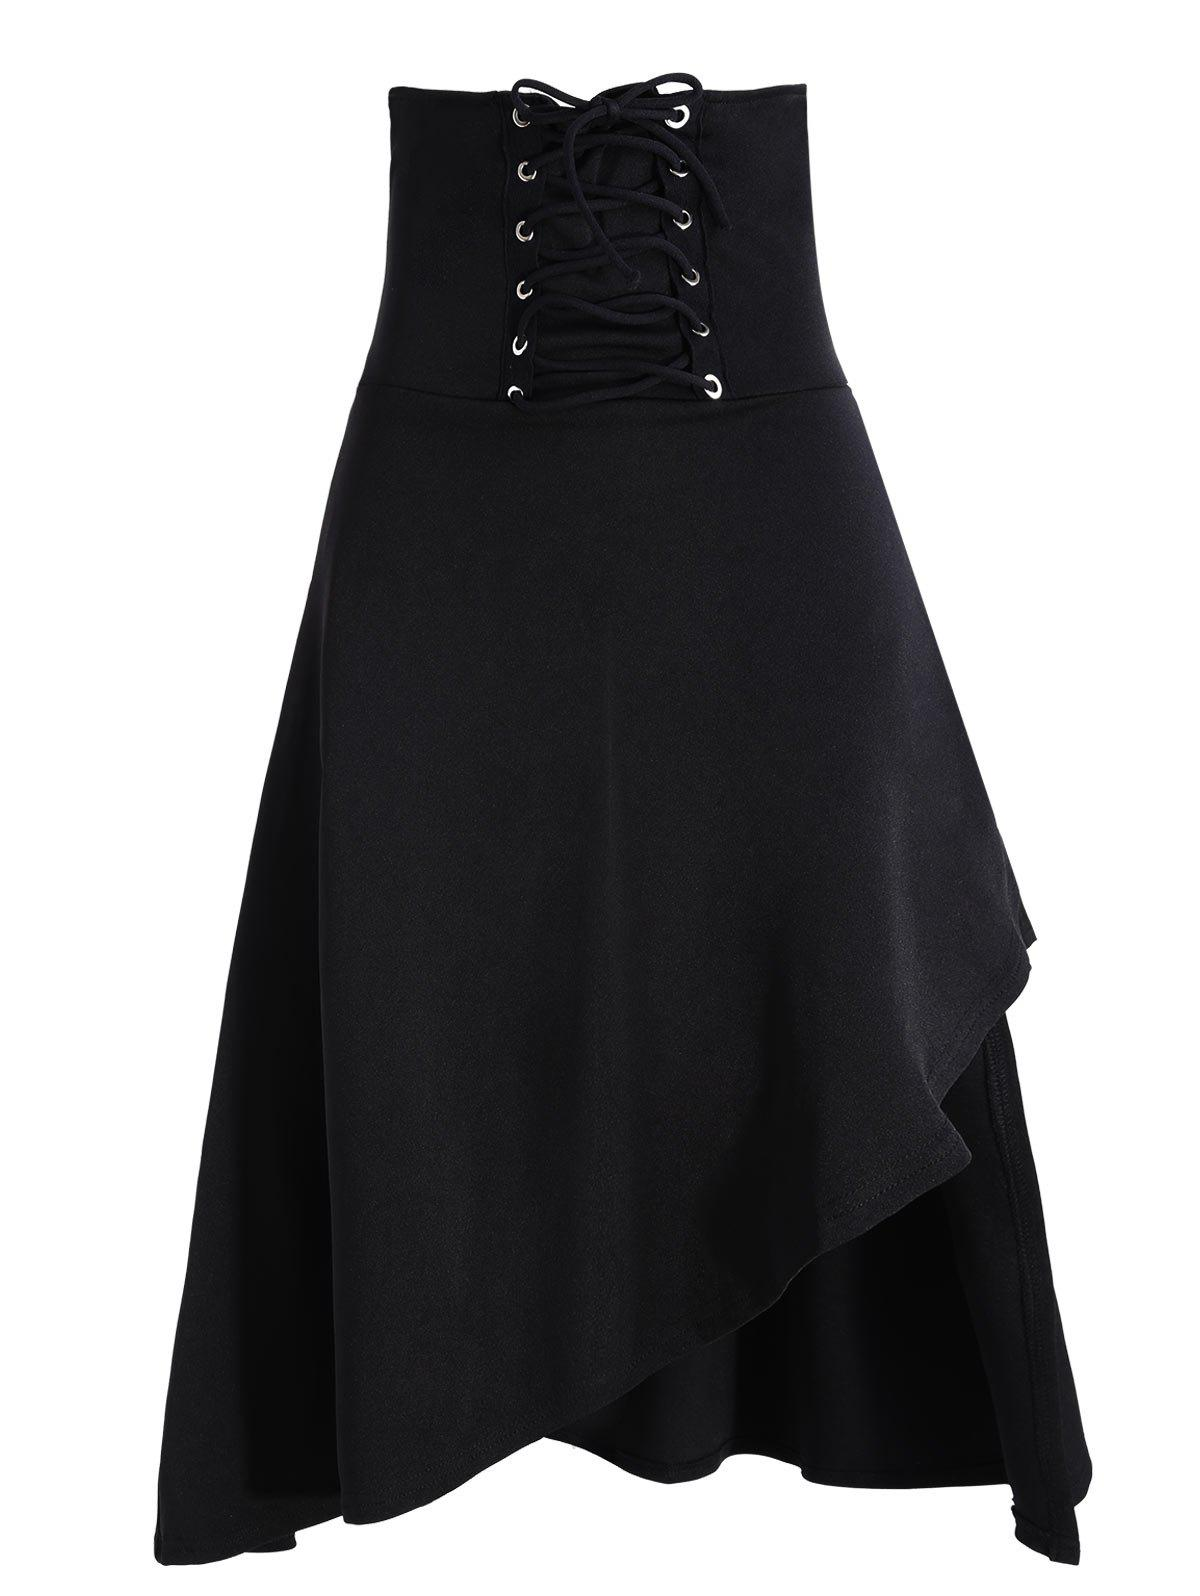 Lace Up Asymmetric Gothic Long Skirt - BLACK M